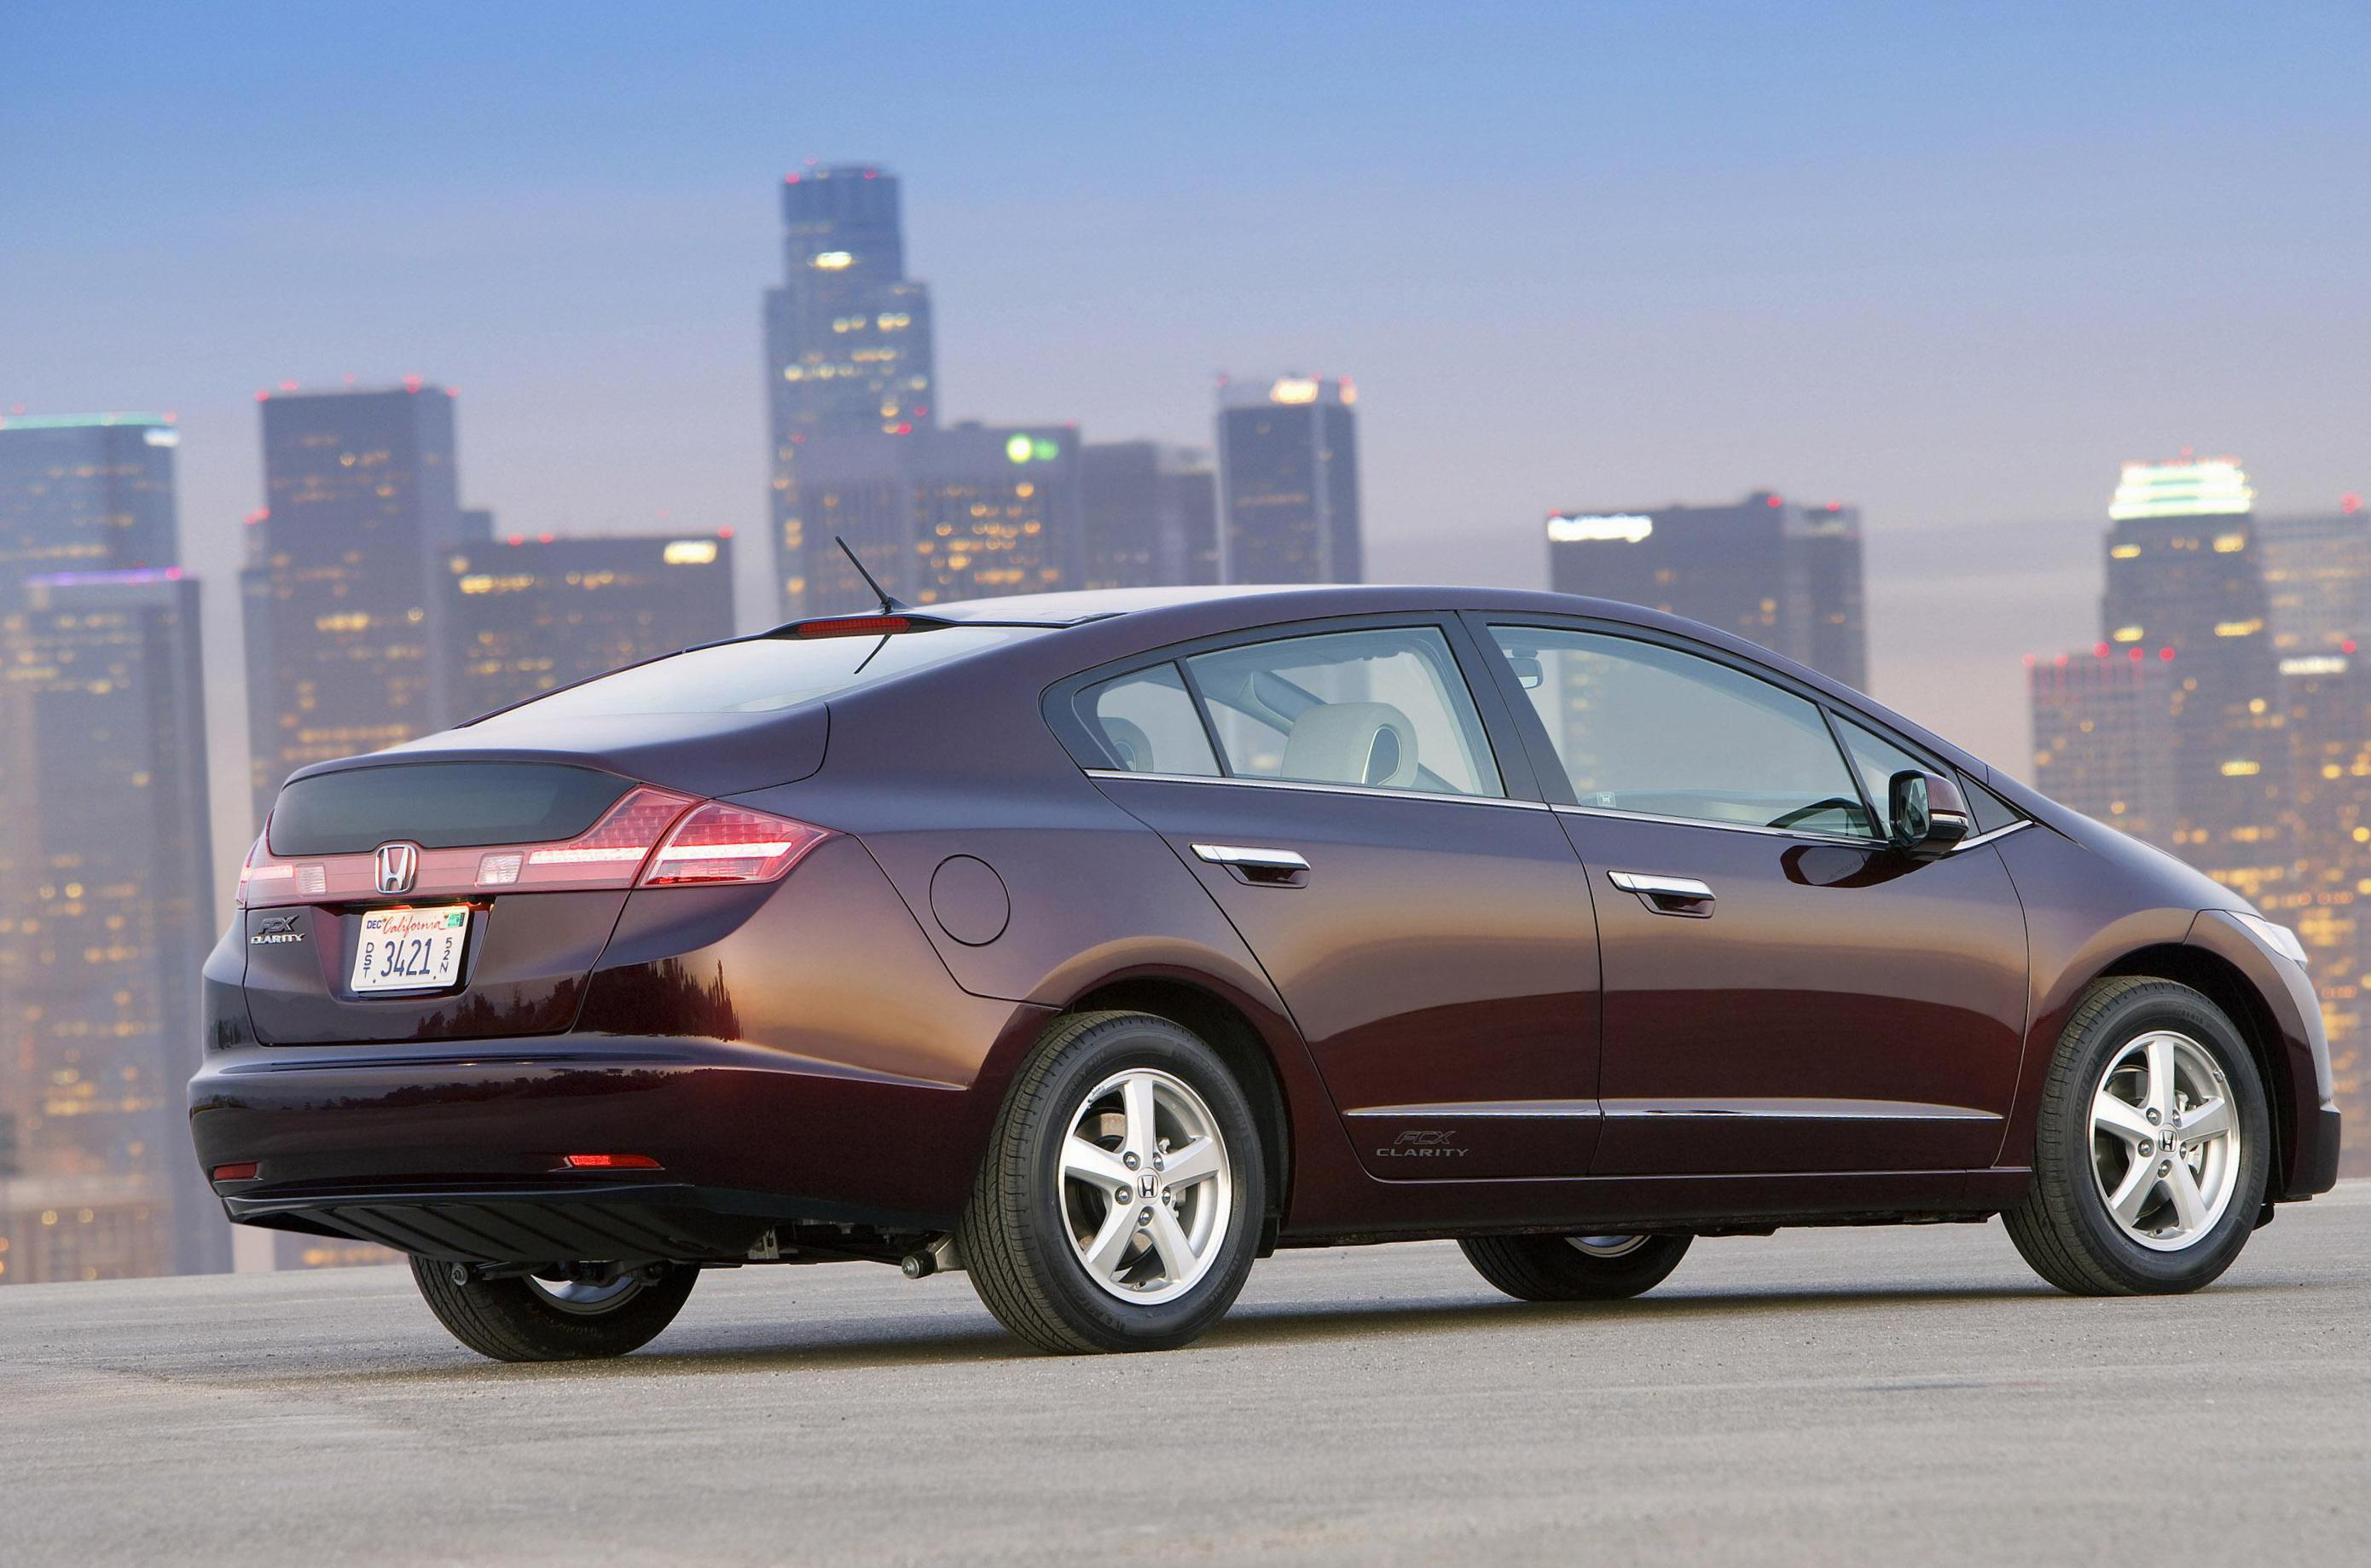 Honda FCX Clarity cost hatchback